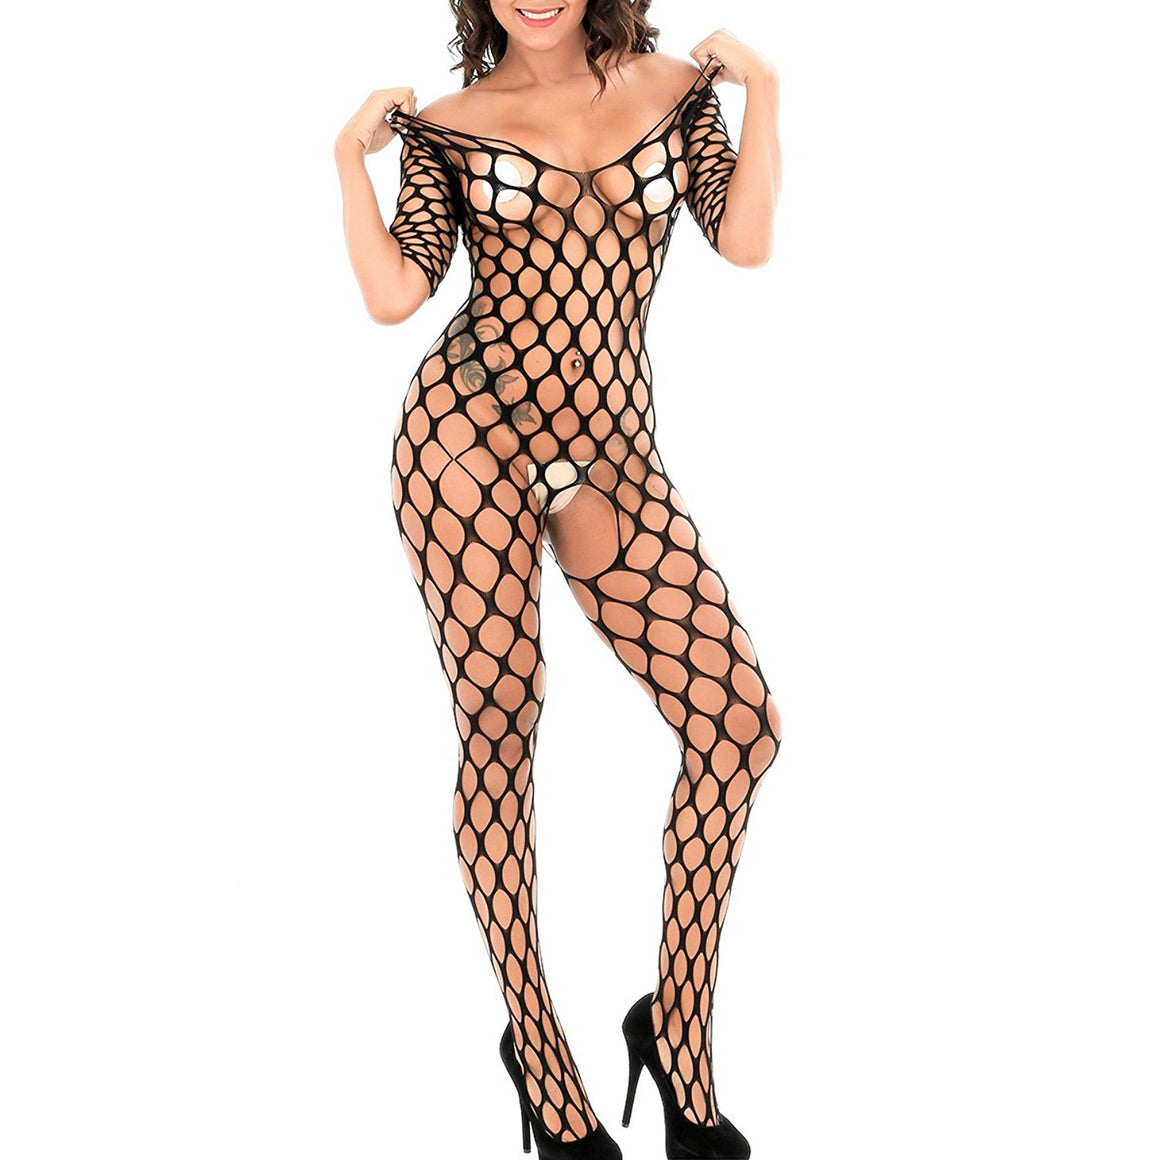 483a4f5e0 Beauty Bodystocking Crotchless Women Sexy Lingerie Fishnet Bodysuit Teddy  Hollow Out Stretch Babydoll